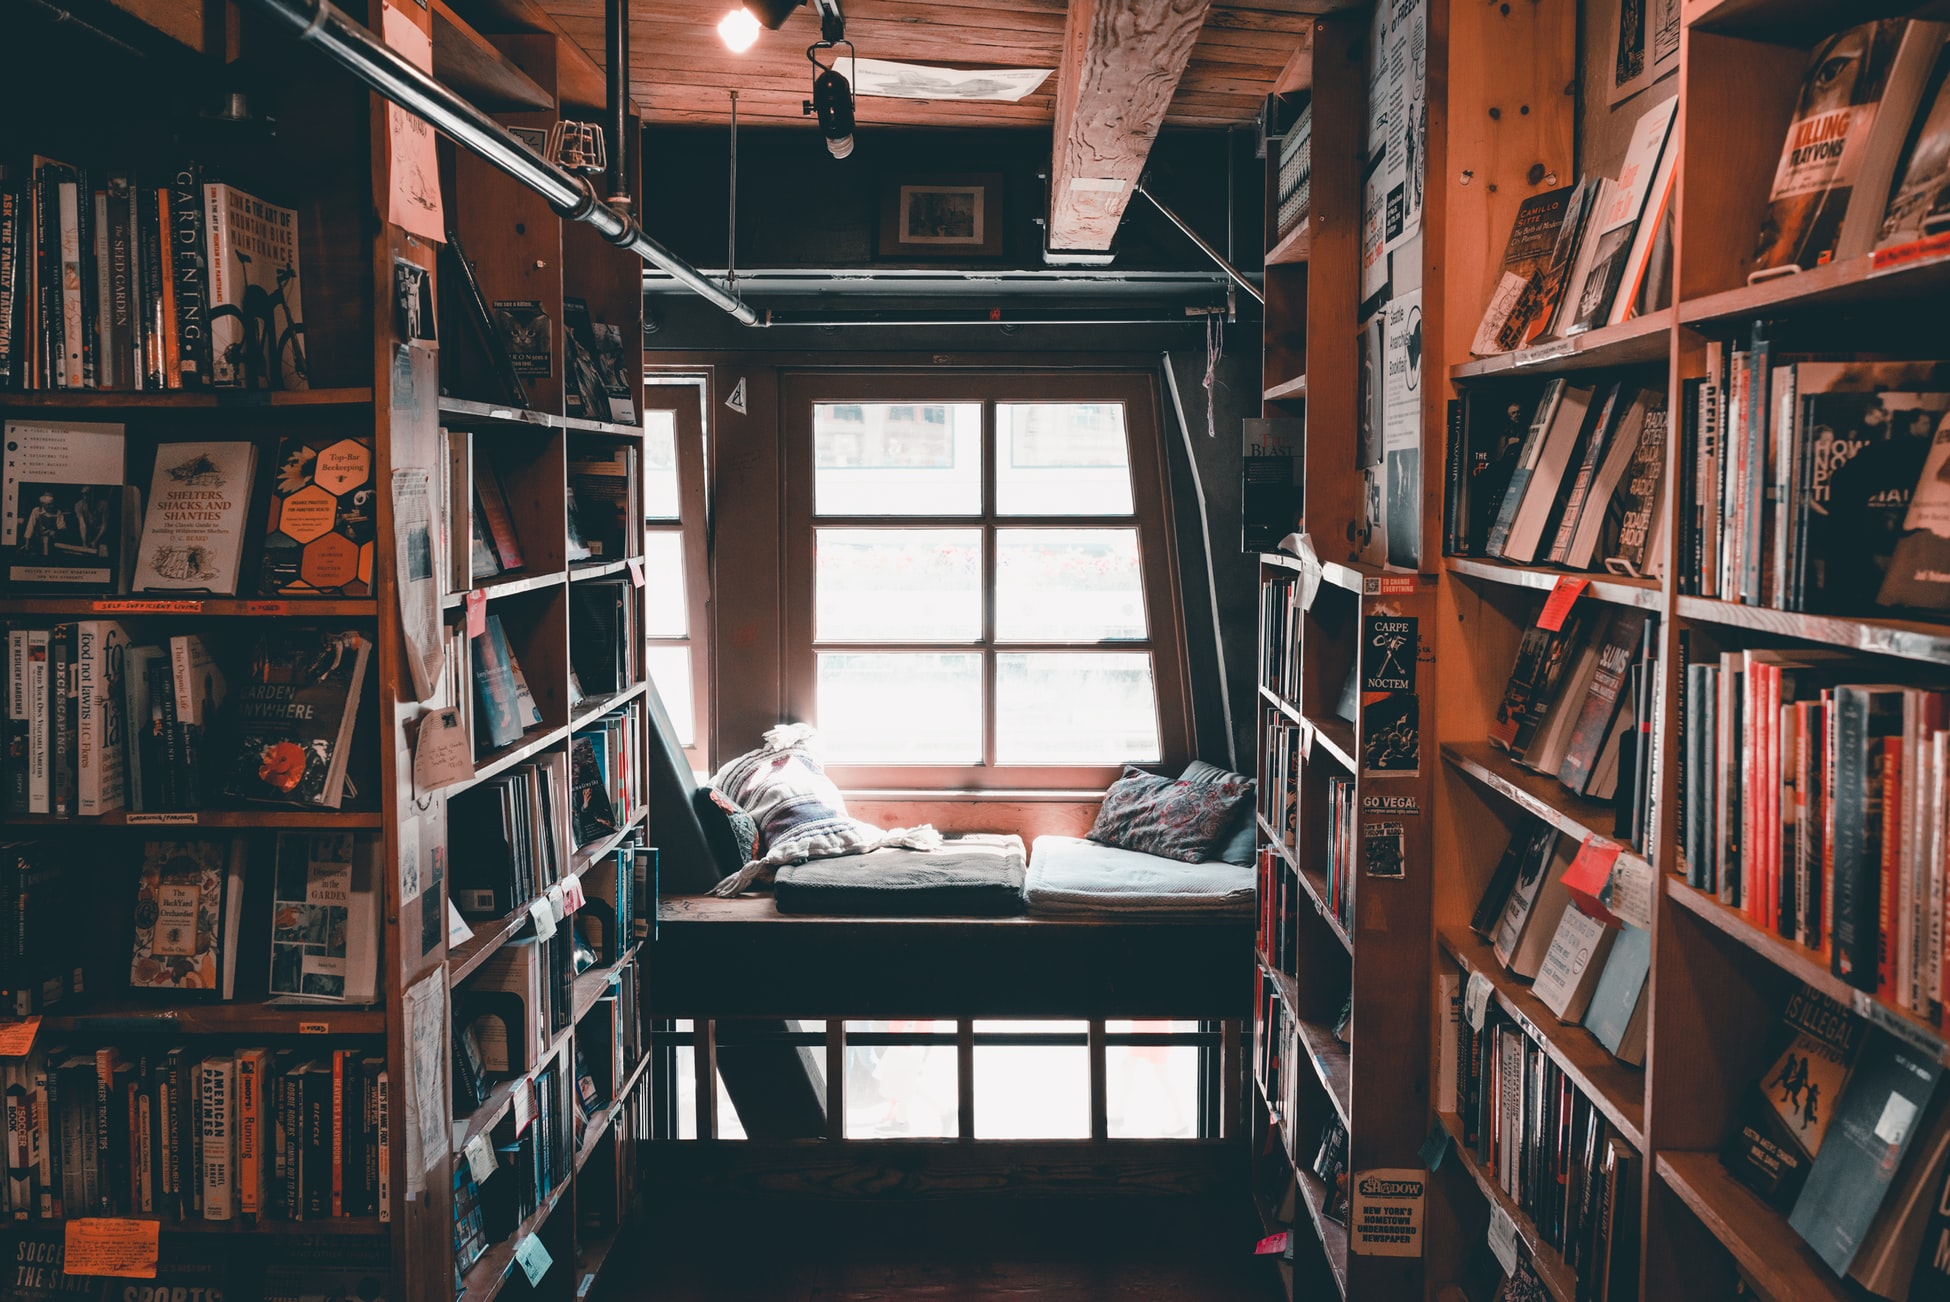 room full with books